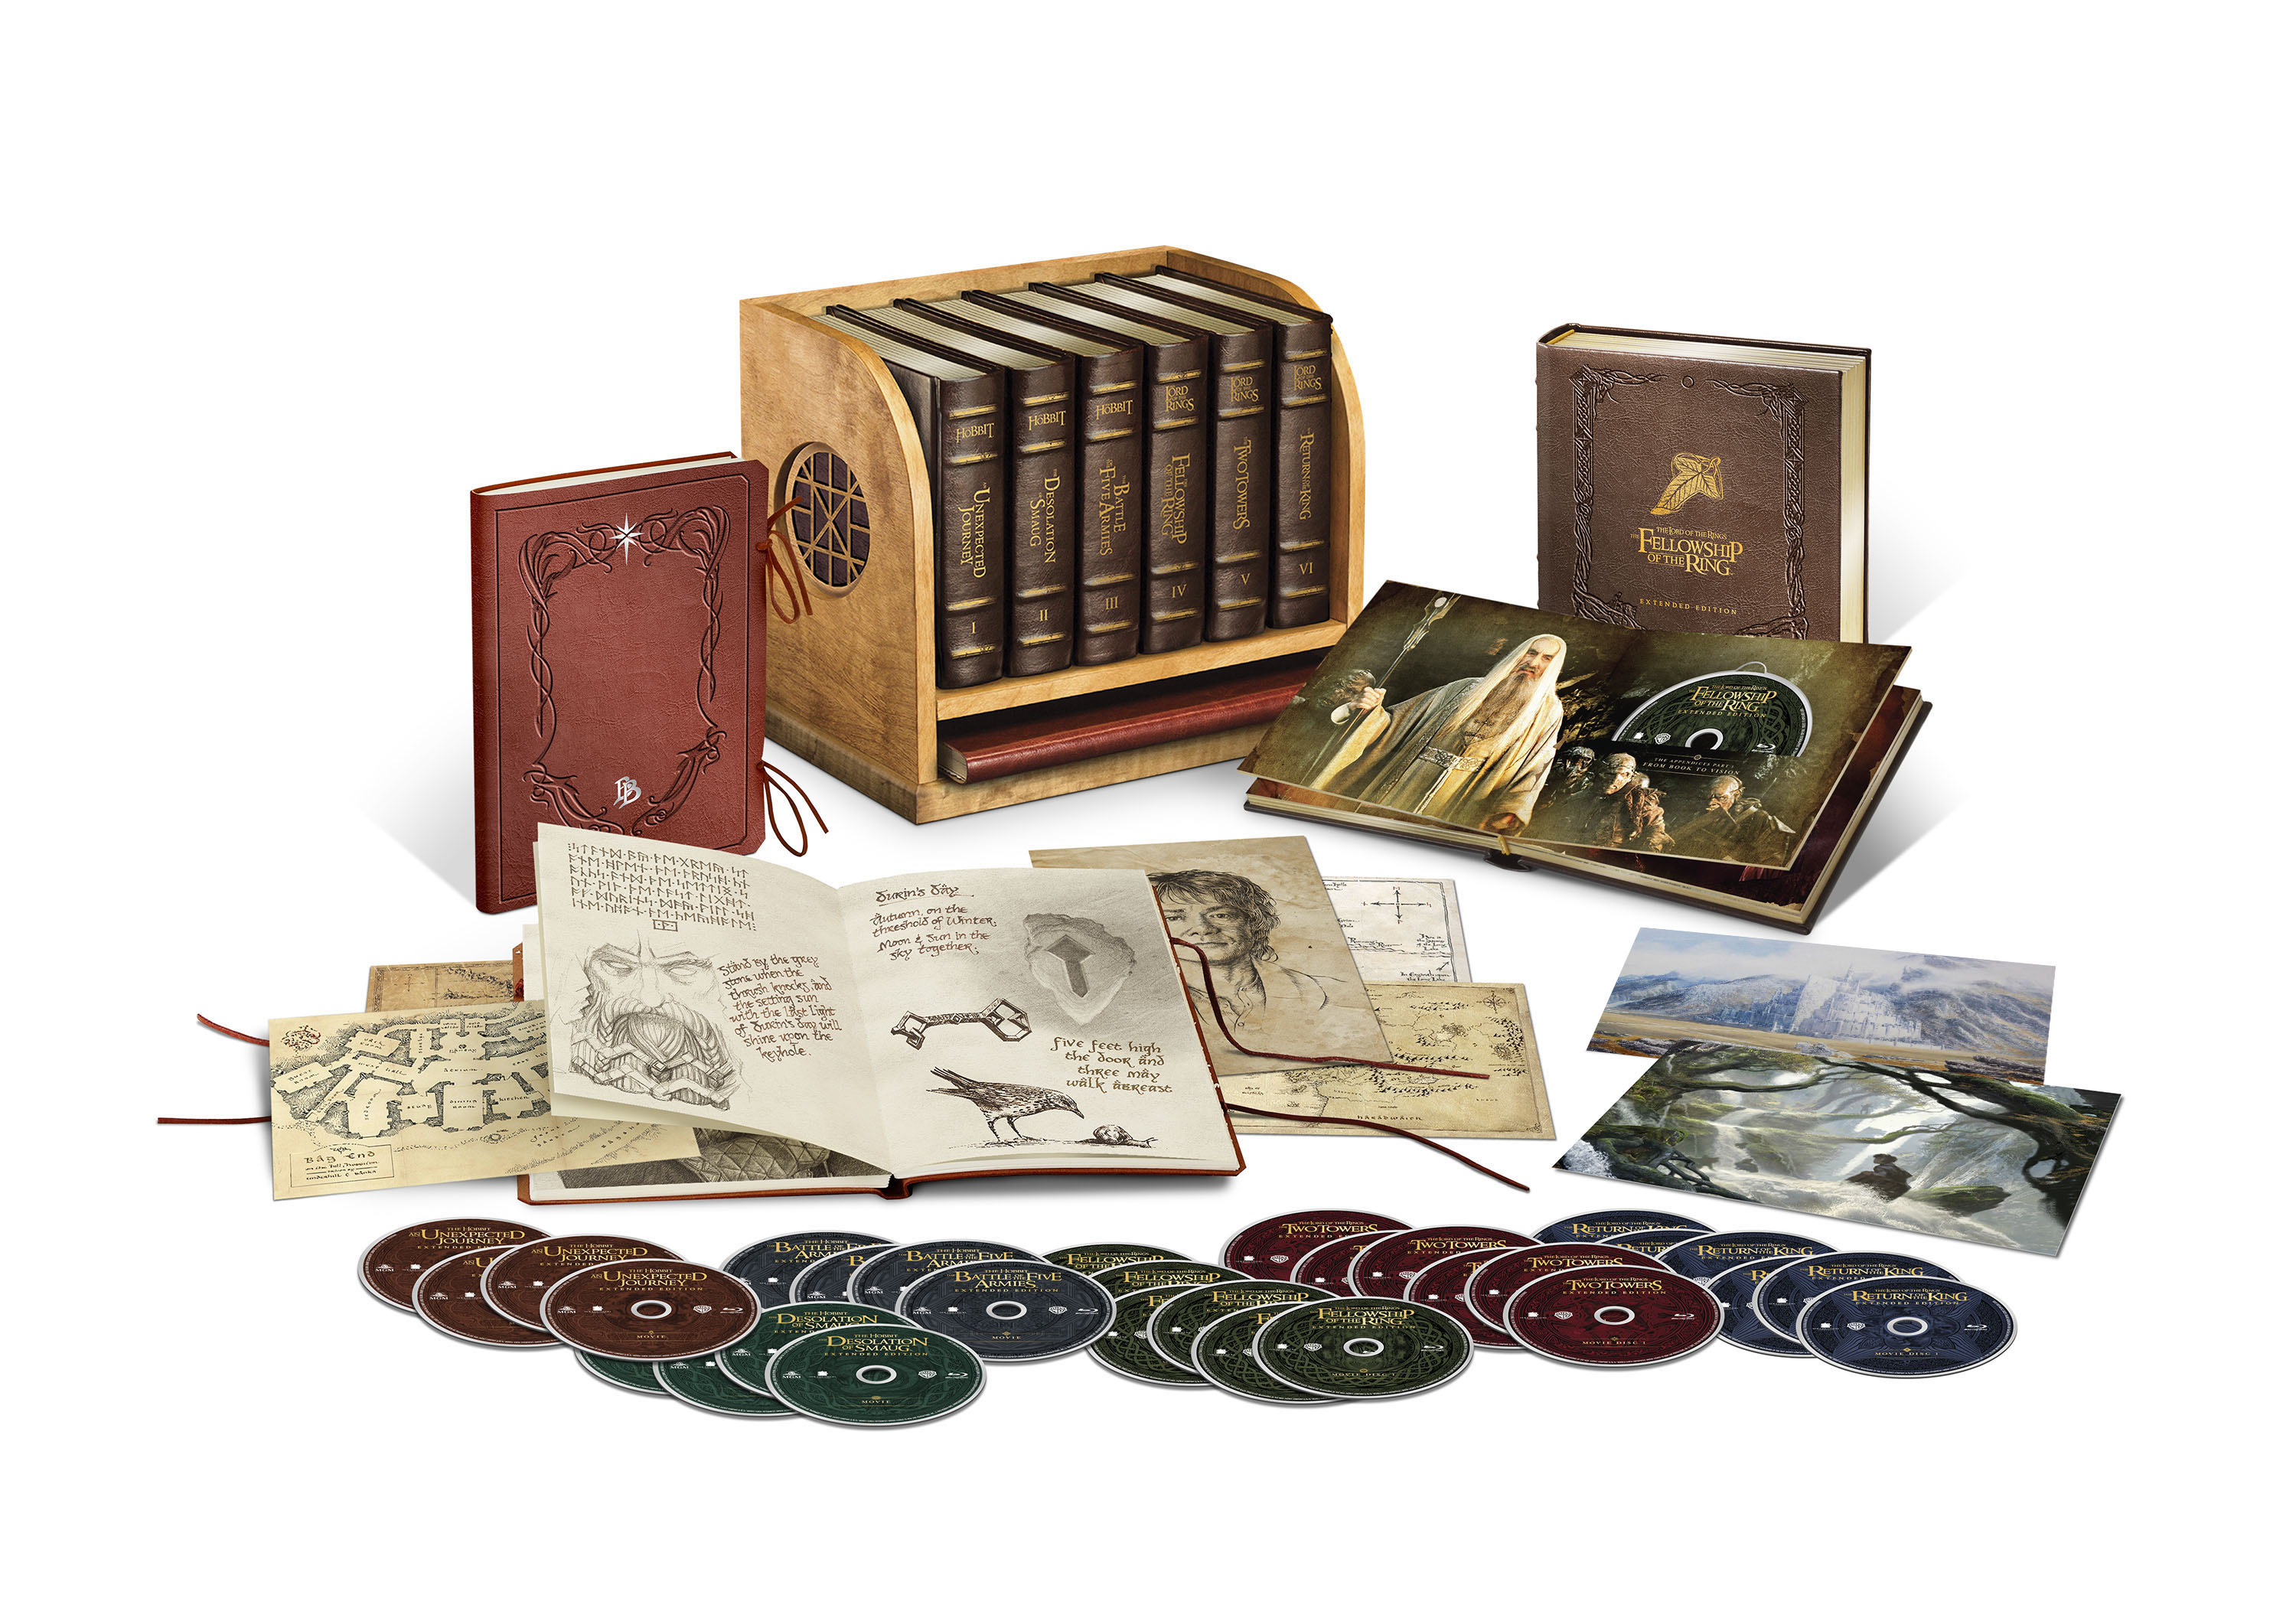 The Middle-Earth Collection